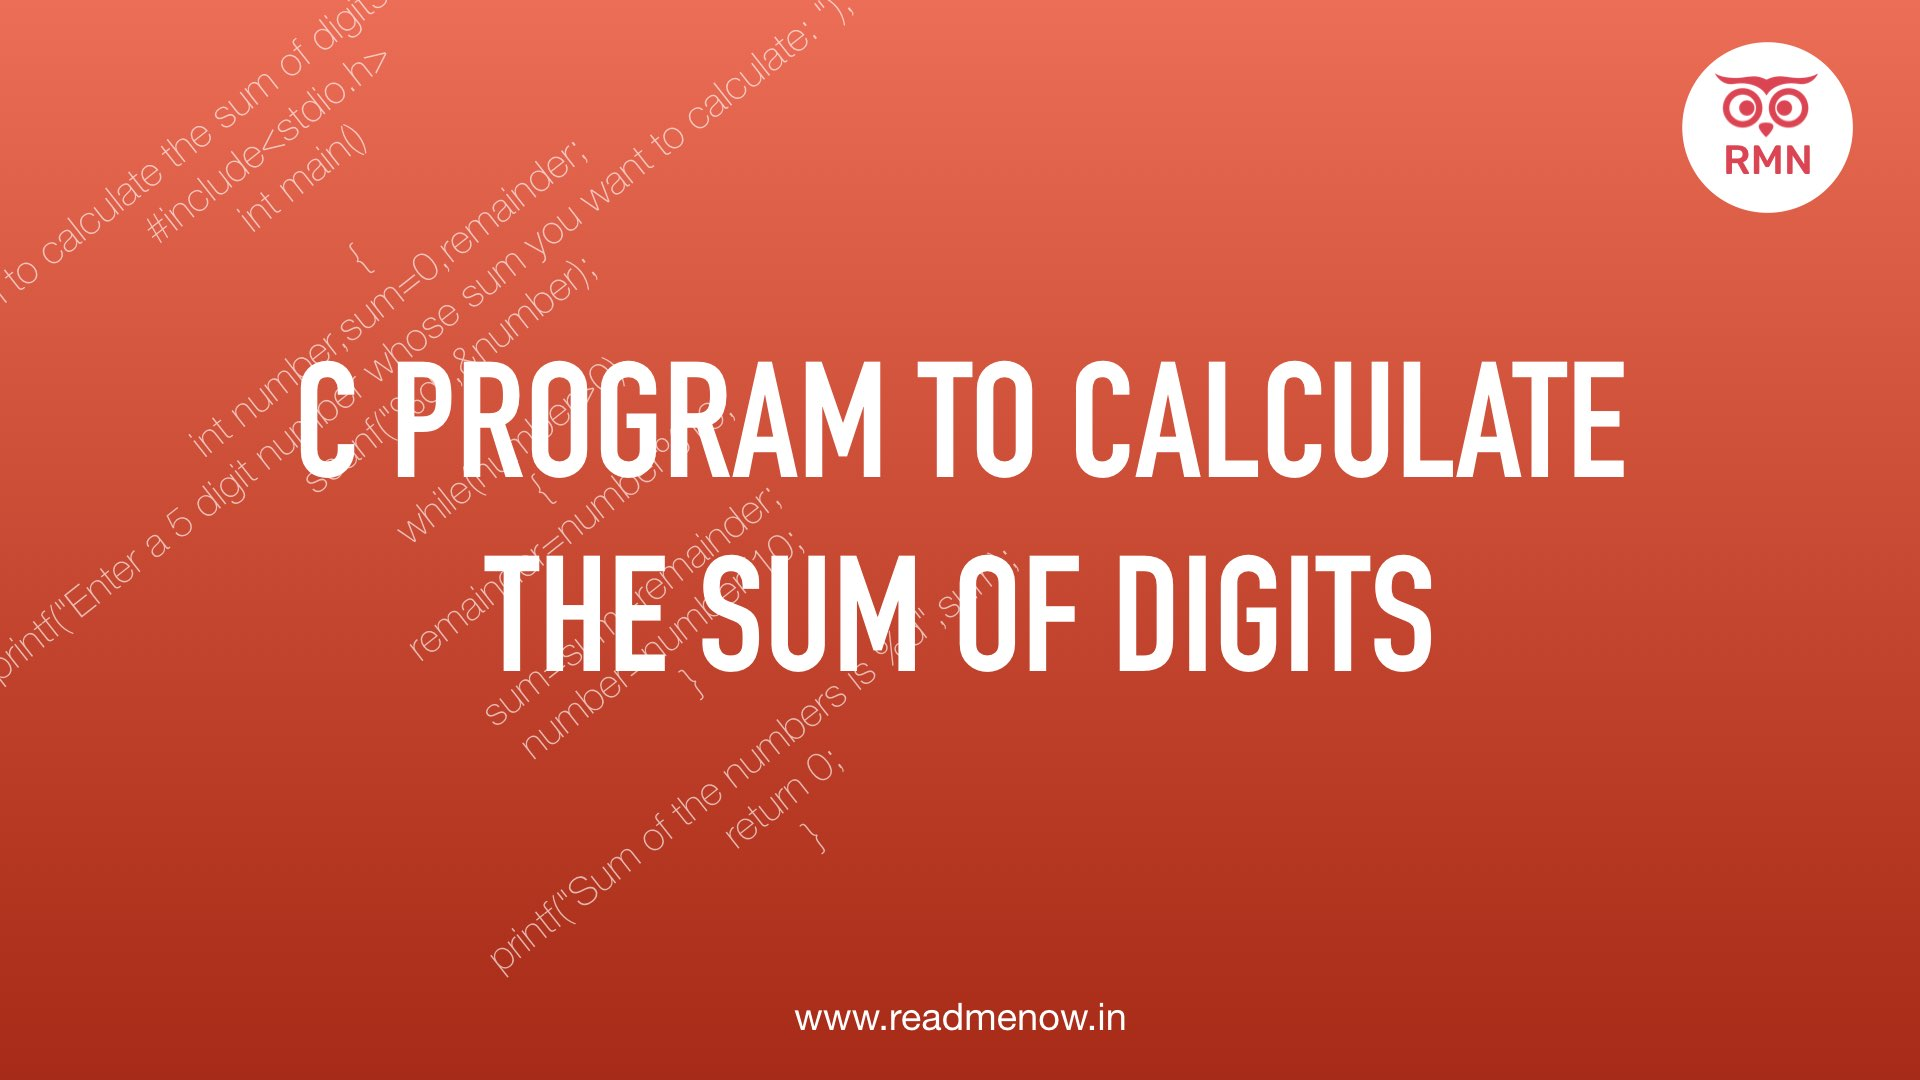 C Program to Calculate the Sum of Digits